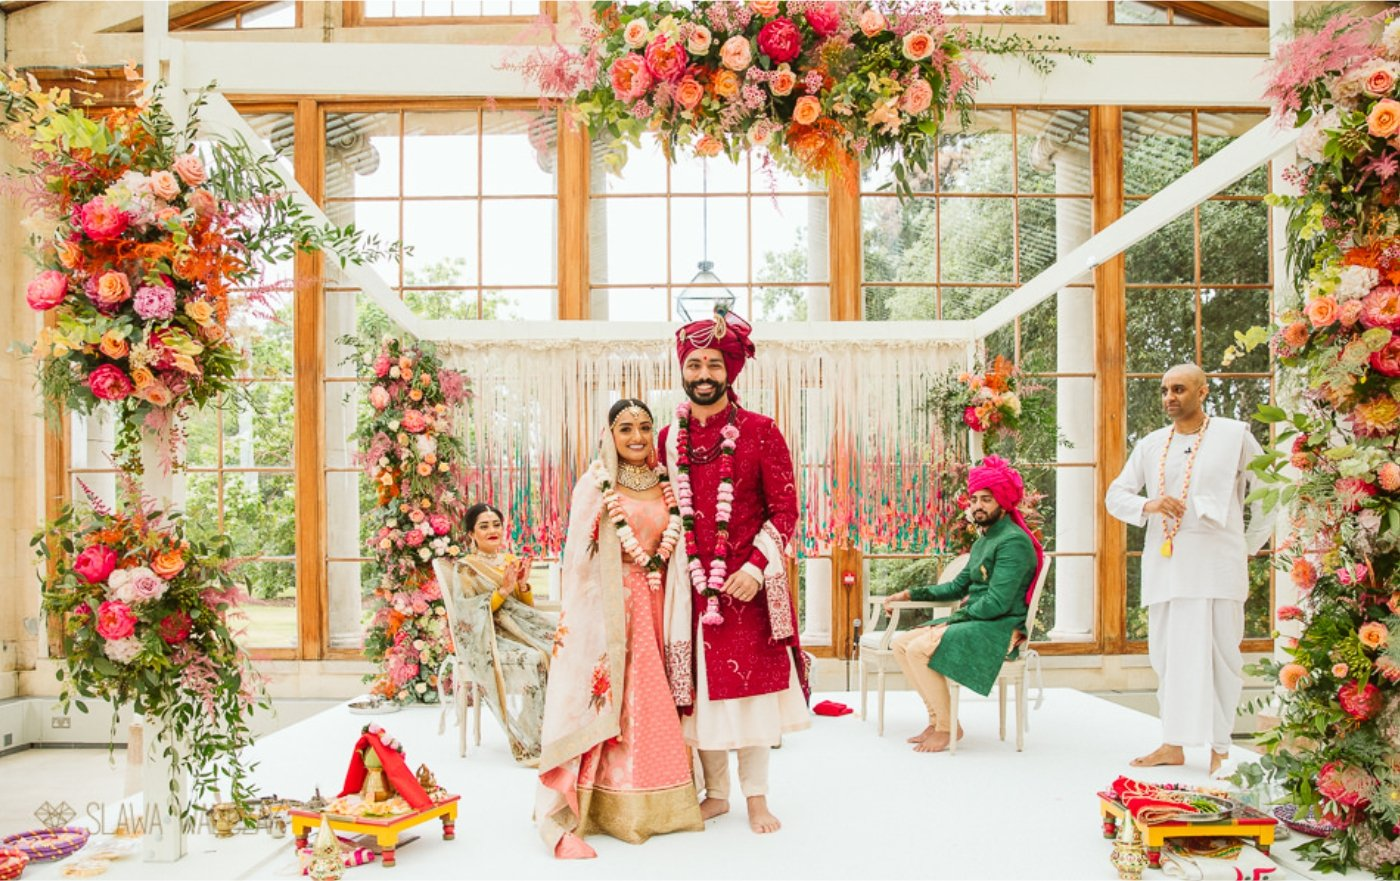 Top 5 Indian Wedding Venues In New Jersey